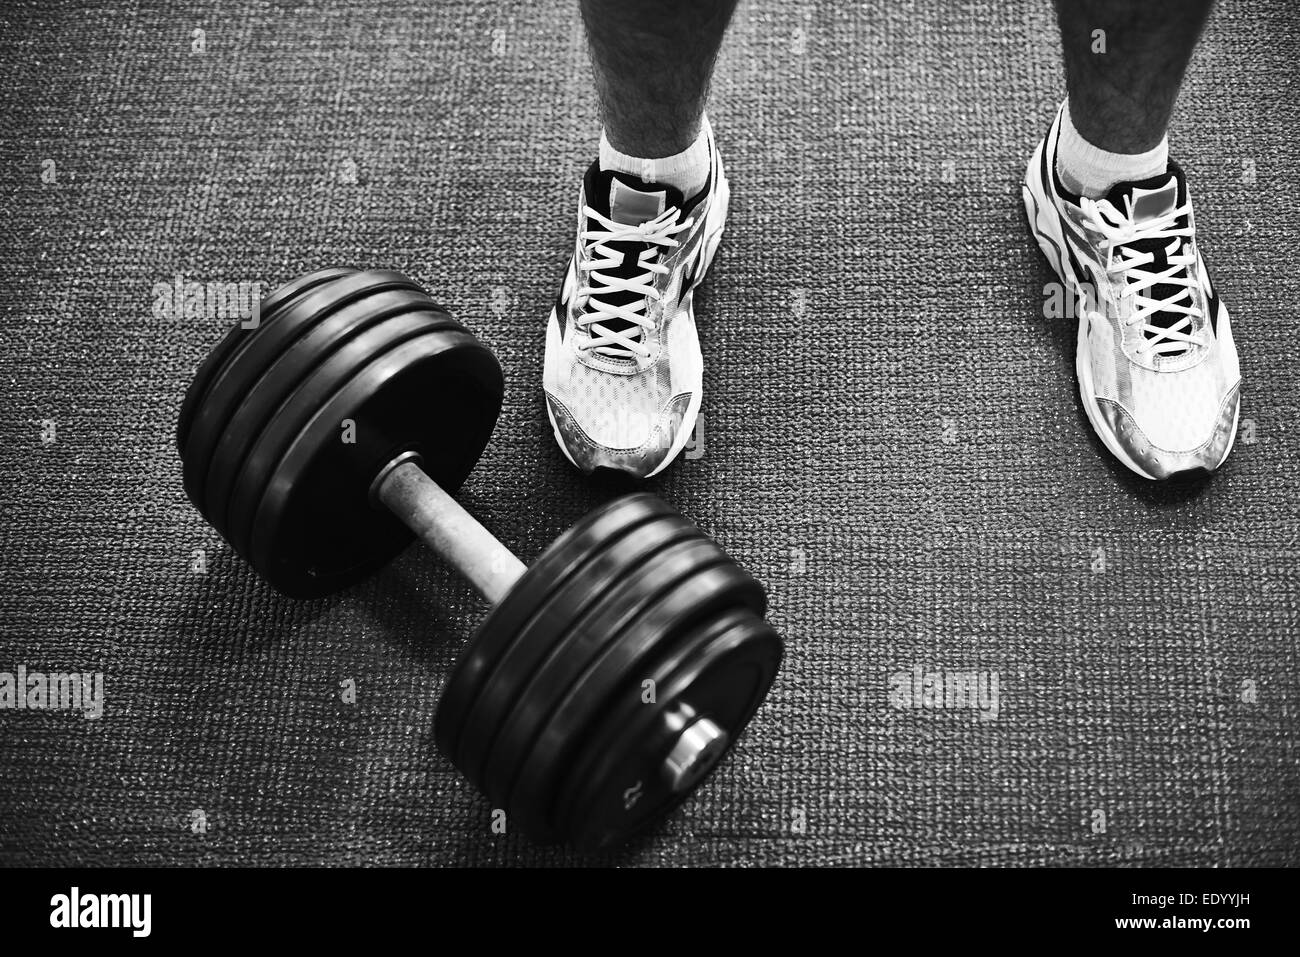 Feet of young man in sneakers and barbell near by - Stock Image